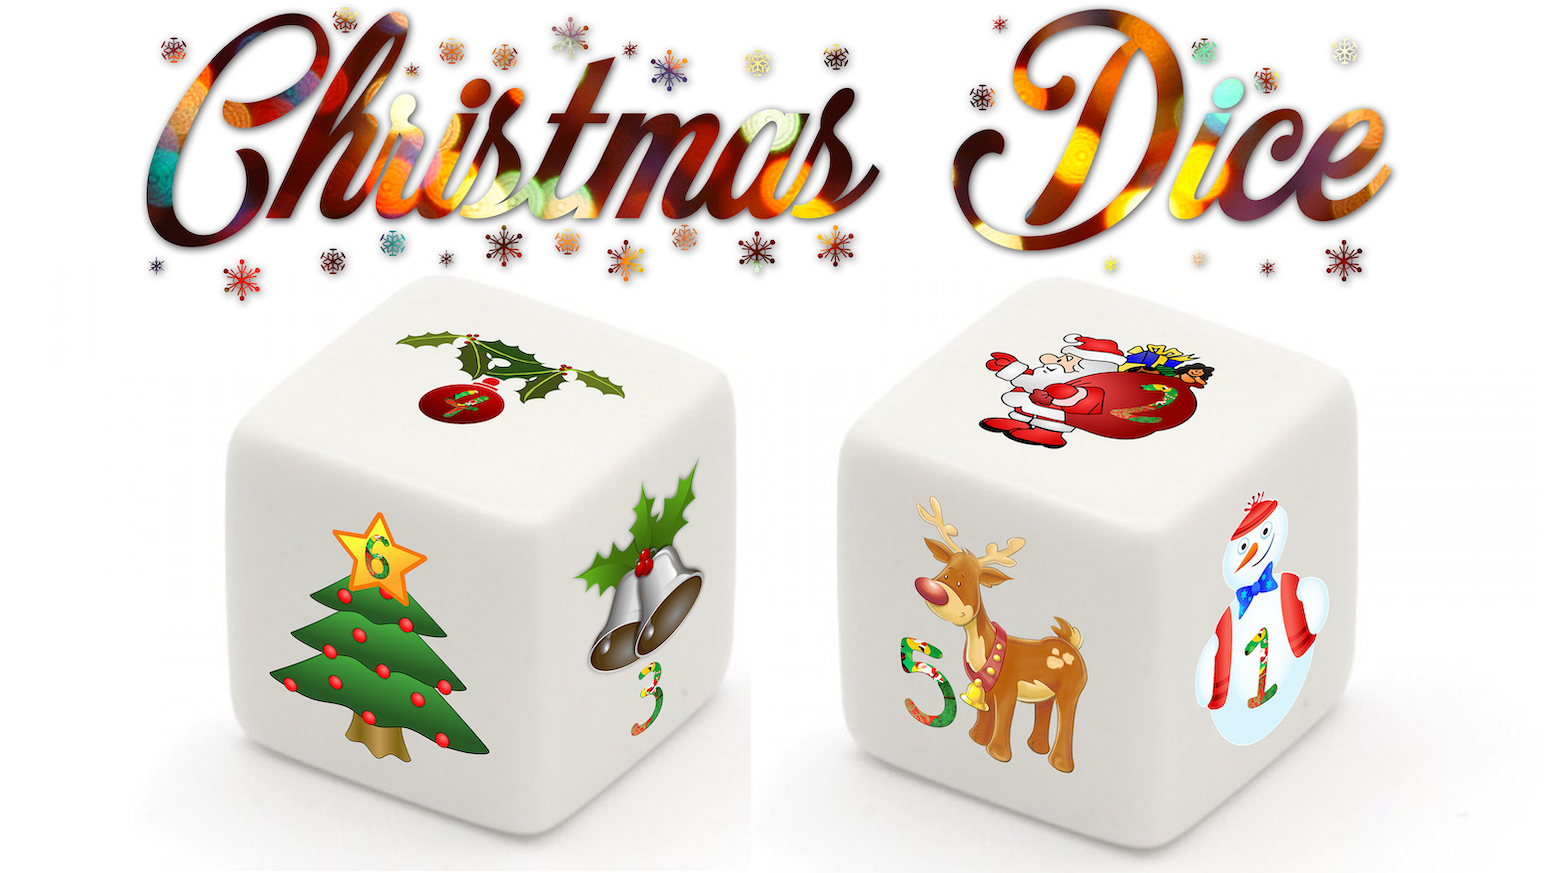 The Christmas Dice is a must buy die for Christmas this year! It is a die in Christmas style and can be used for almost every game!